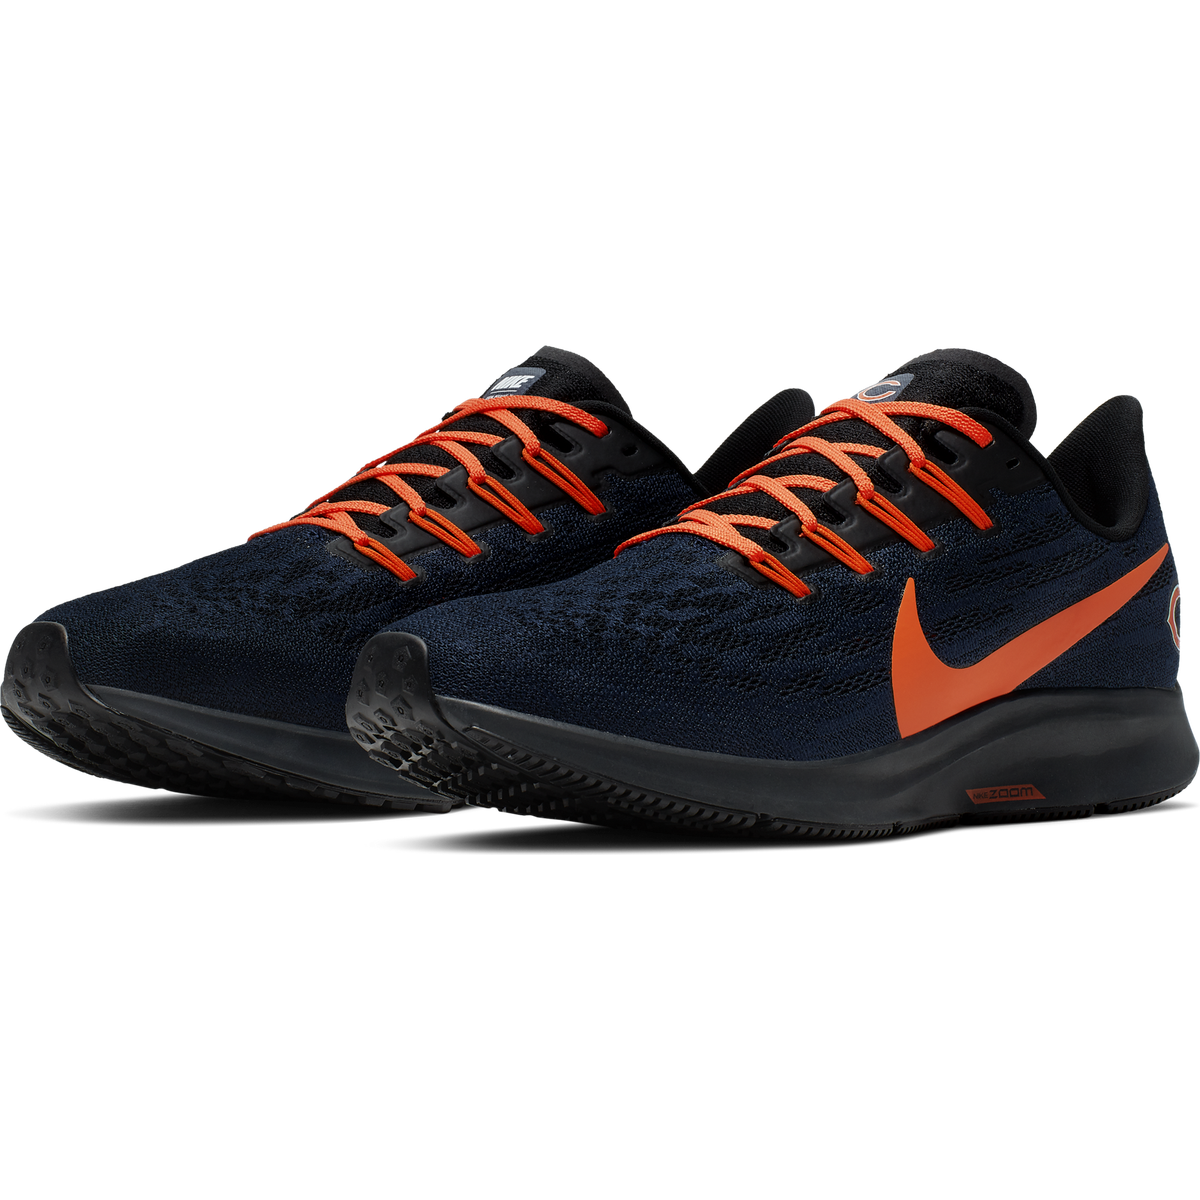 superior quality 6fdff e56d4 Nike drops the new Air Zoom Pegasus 36 Bears shoe collection ...